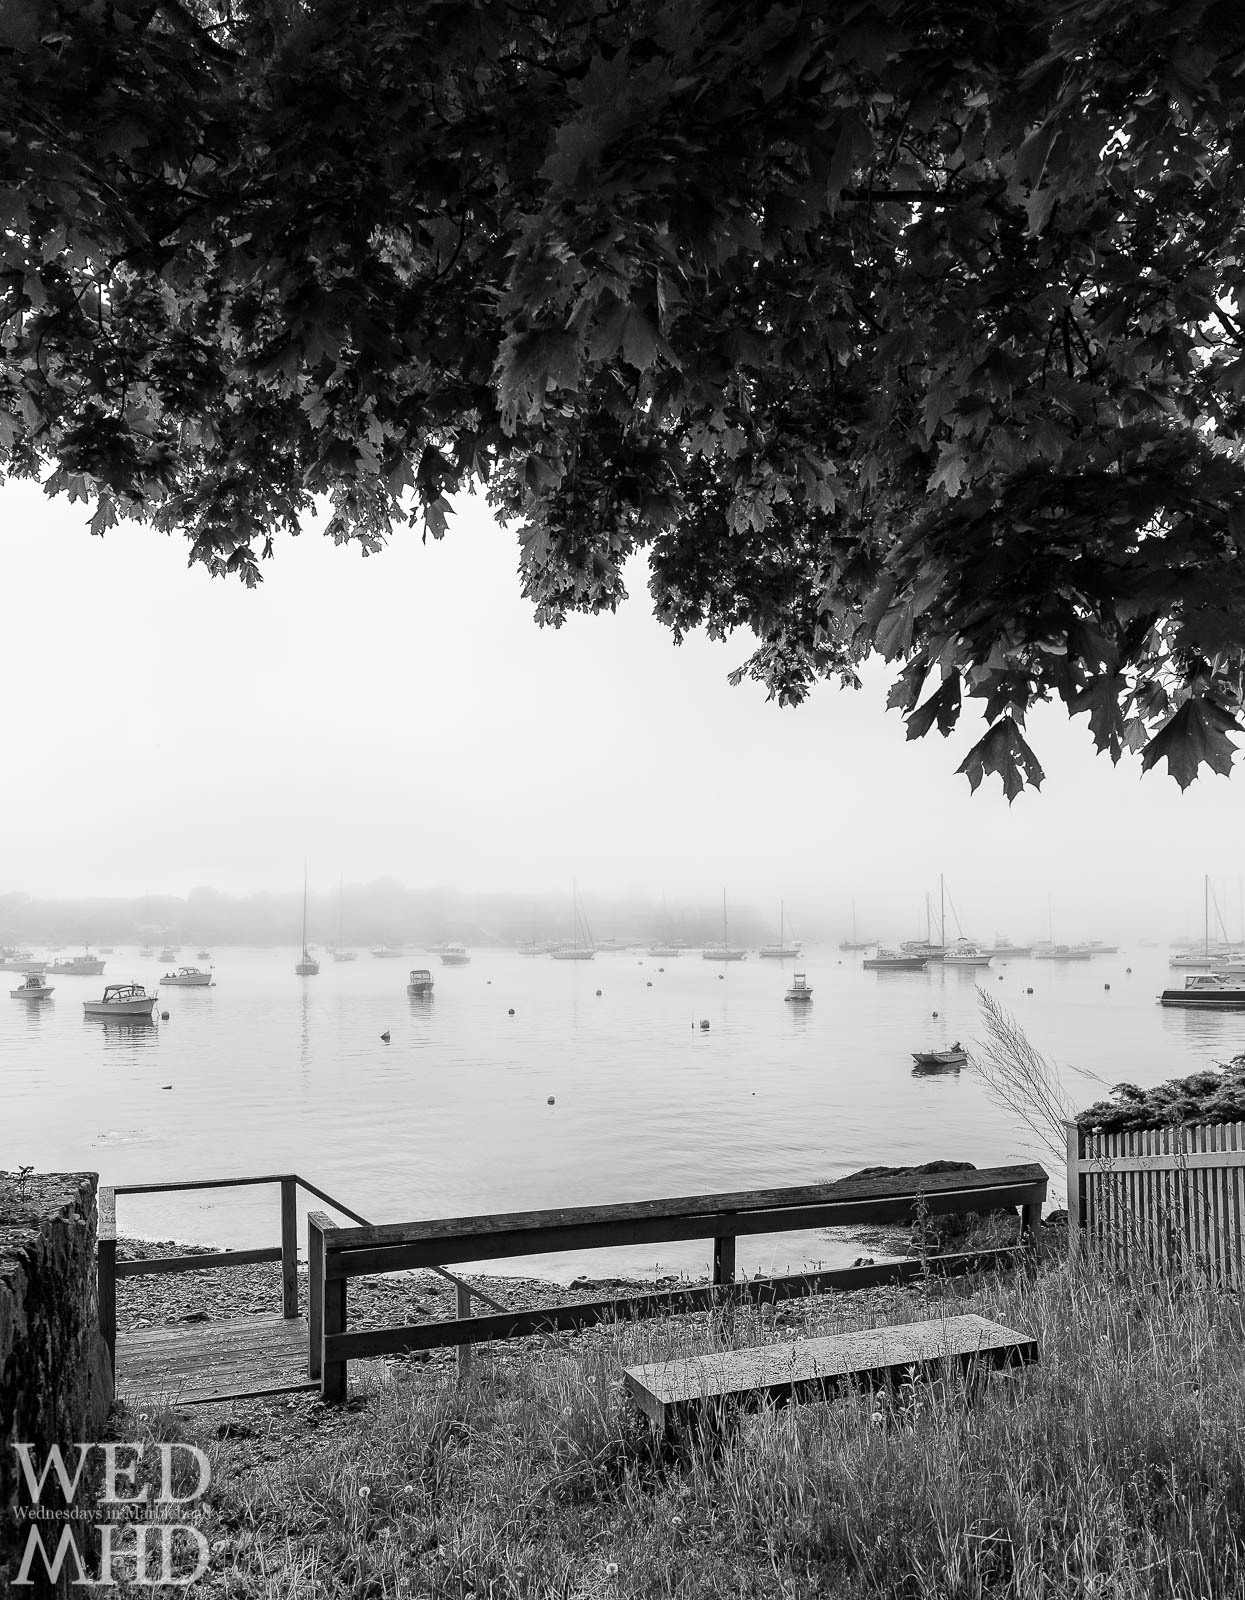 Boats are lost in the fog in this view under a tree canopy from Parker Lane